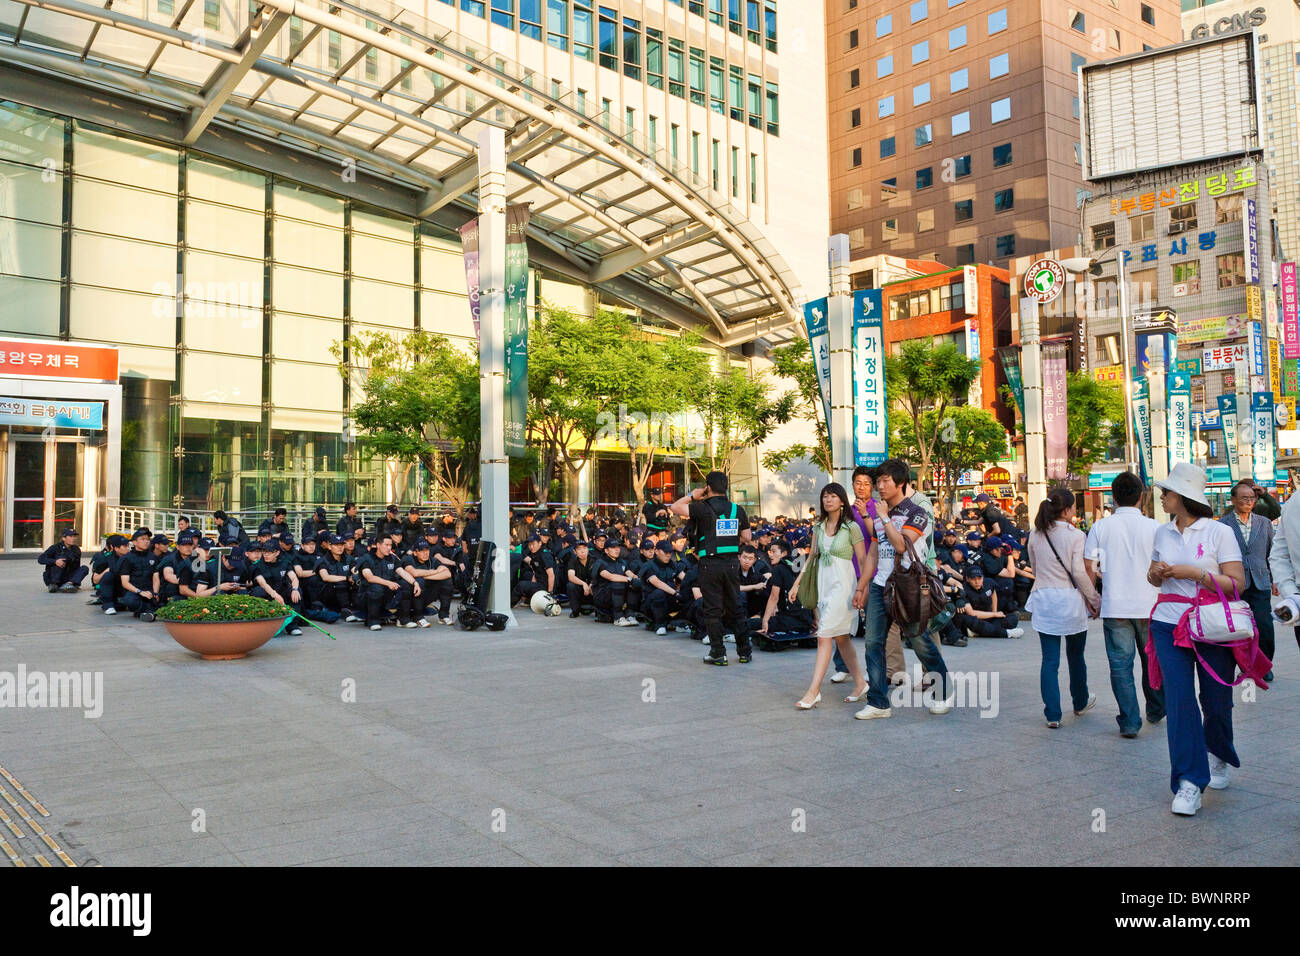 Riot police waiting at the ready in Myeong-dong, Seoul, South Korea. JMH3847 - Stock Image